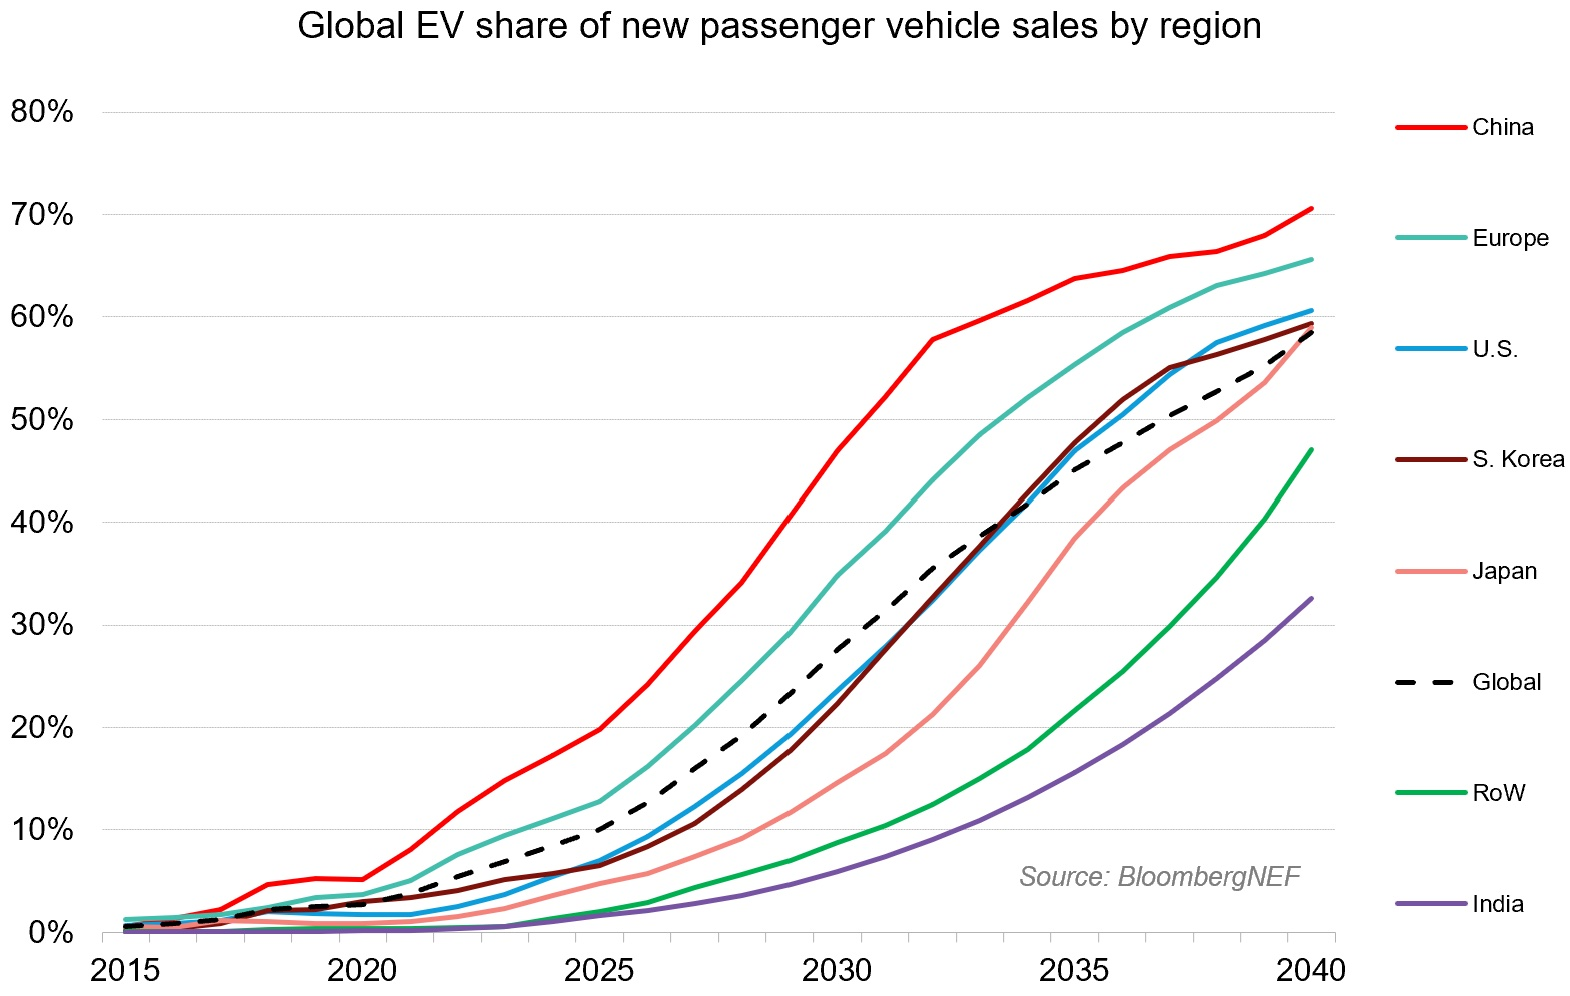 Chart showing projected EV sales in various countries